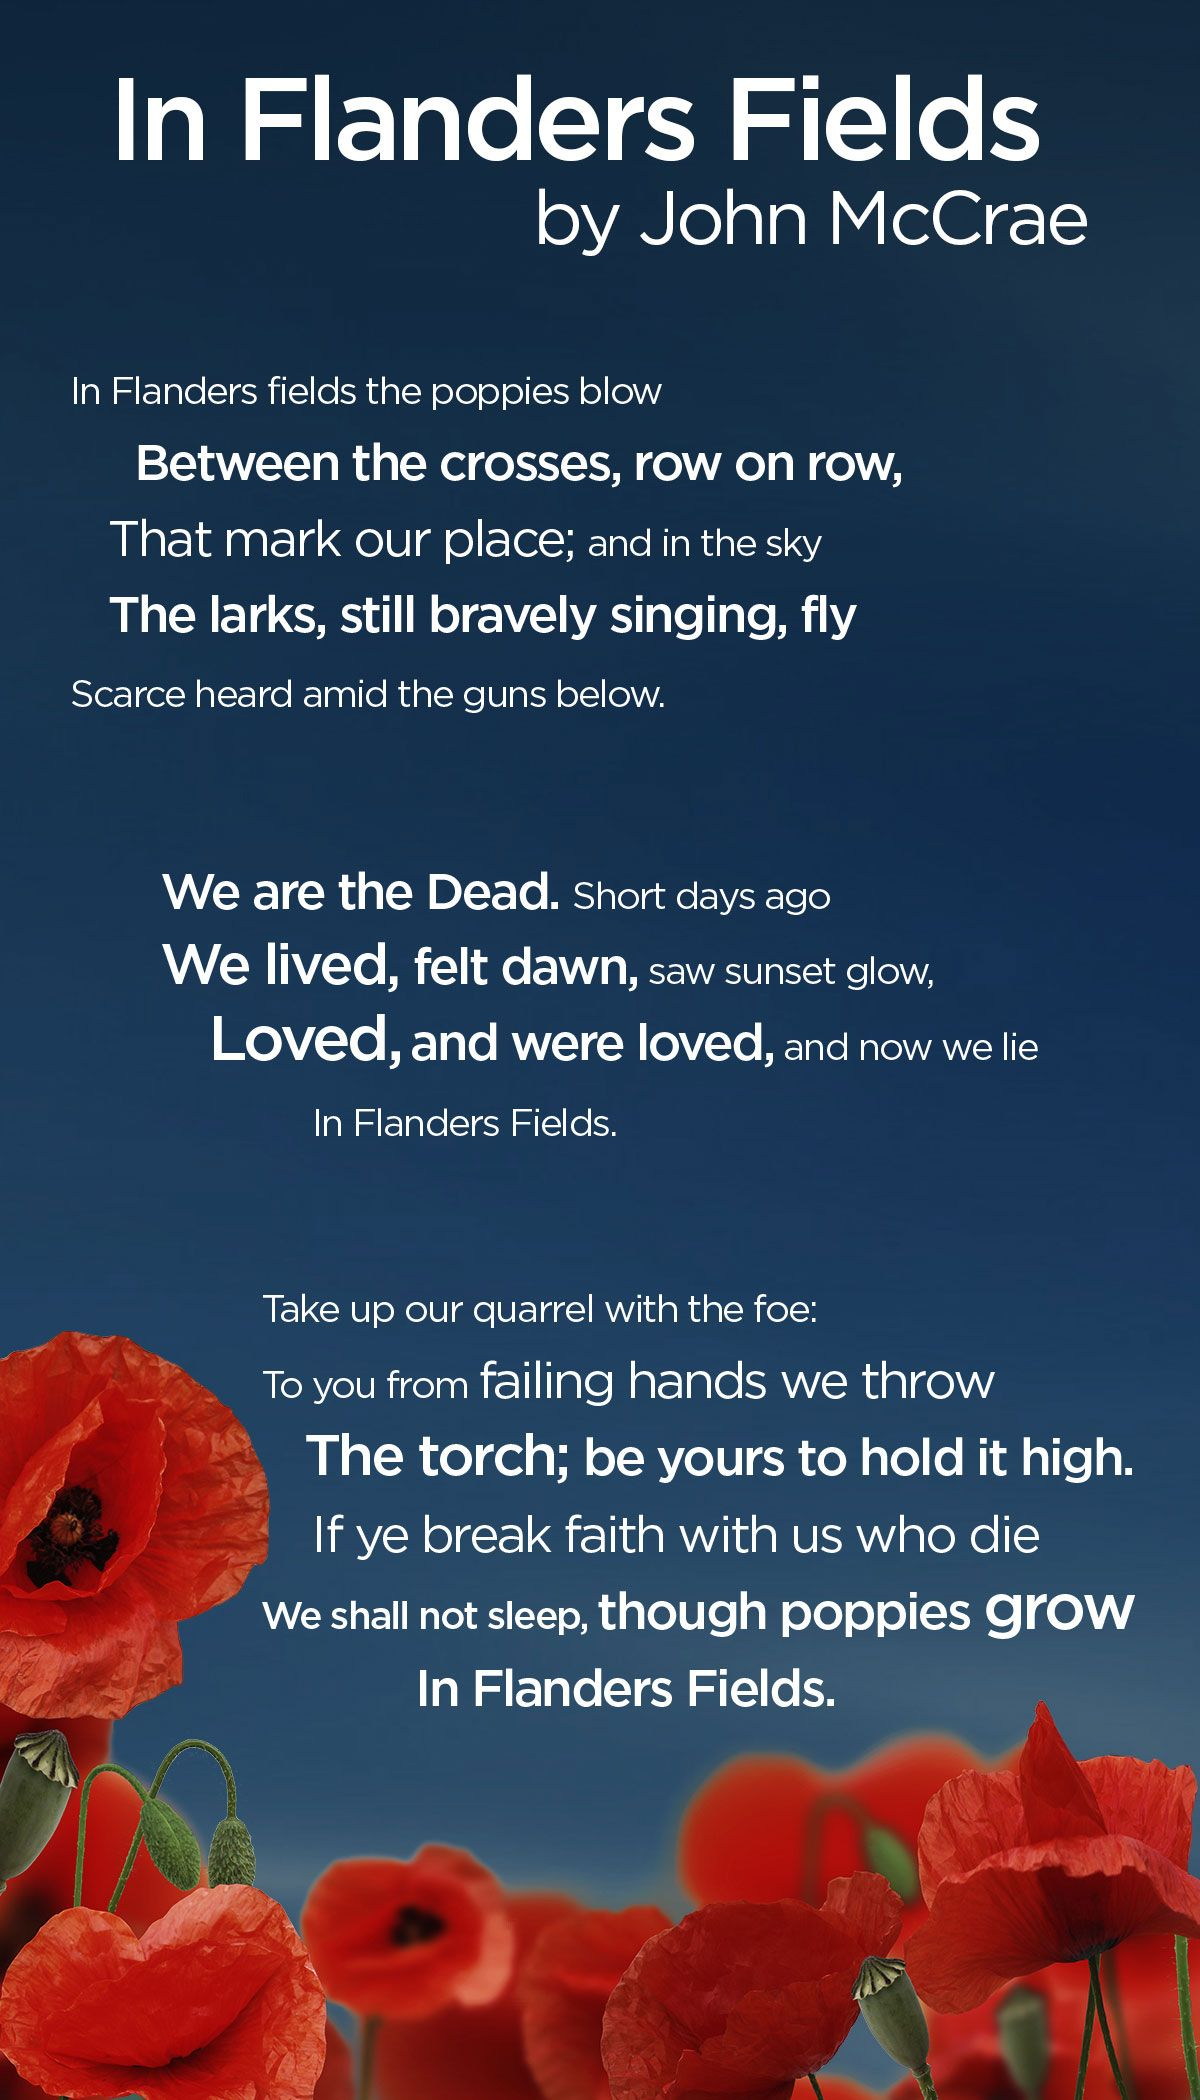 Memorial day poems veterans poems prayers - The Famous Remembrance Day Poem In Flanders Fields By John Mccrae